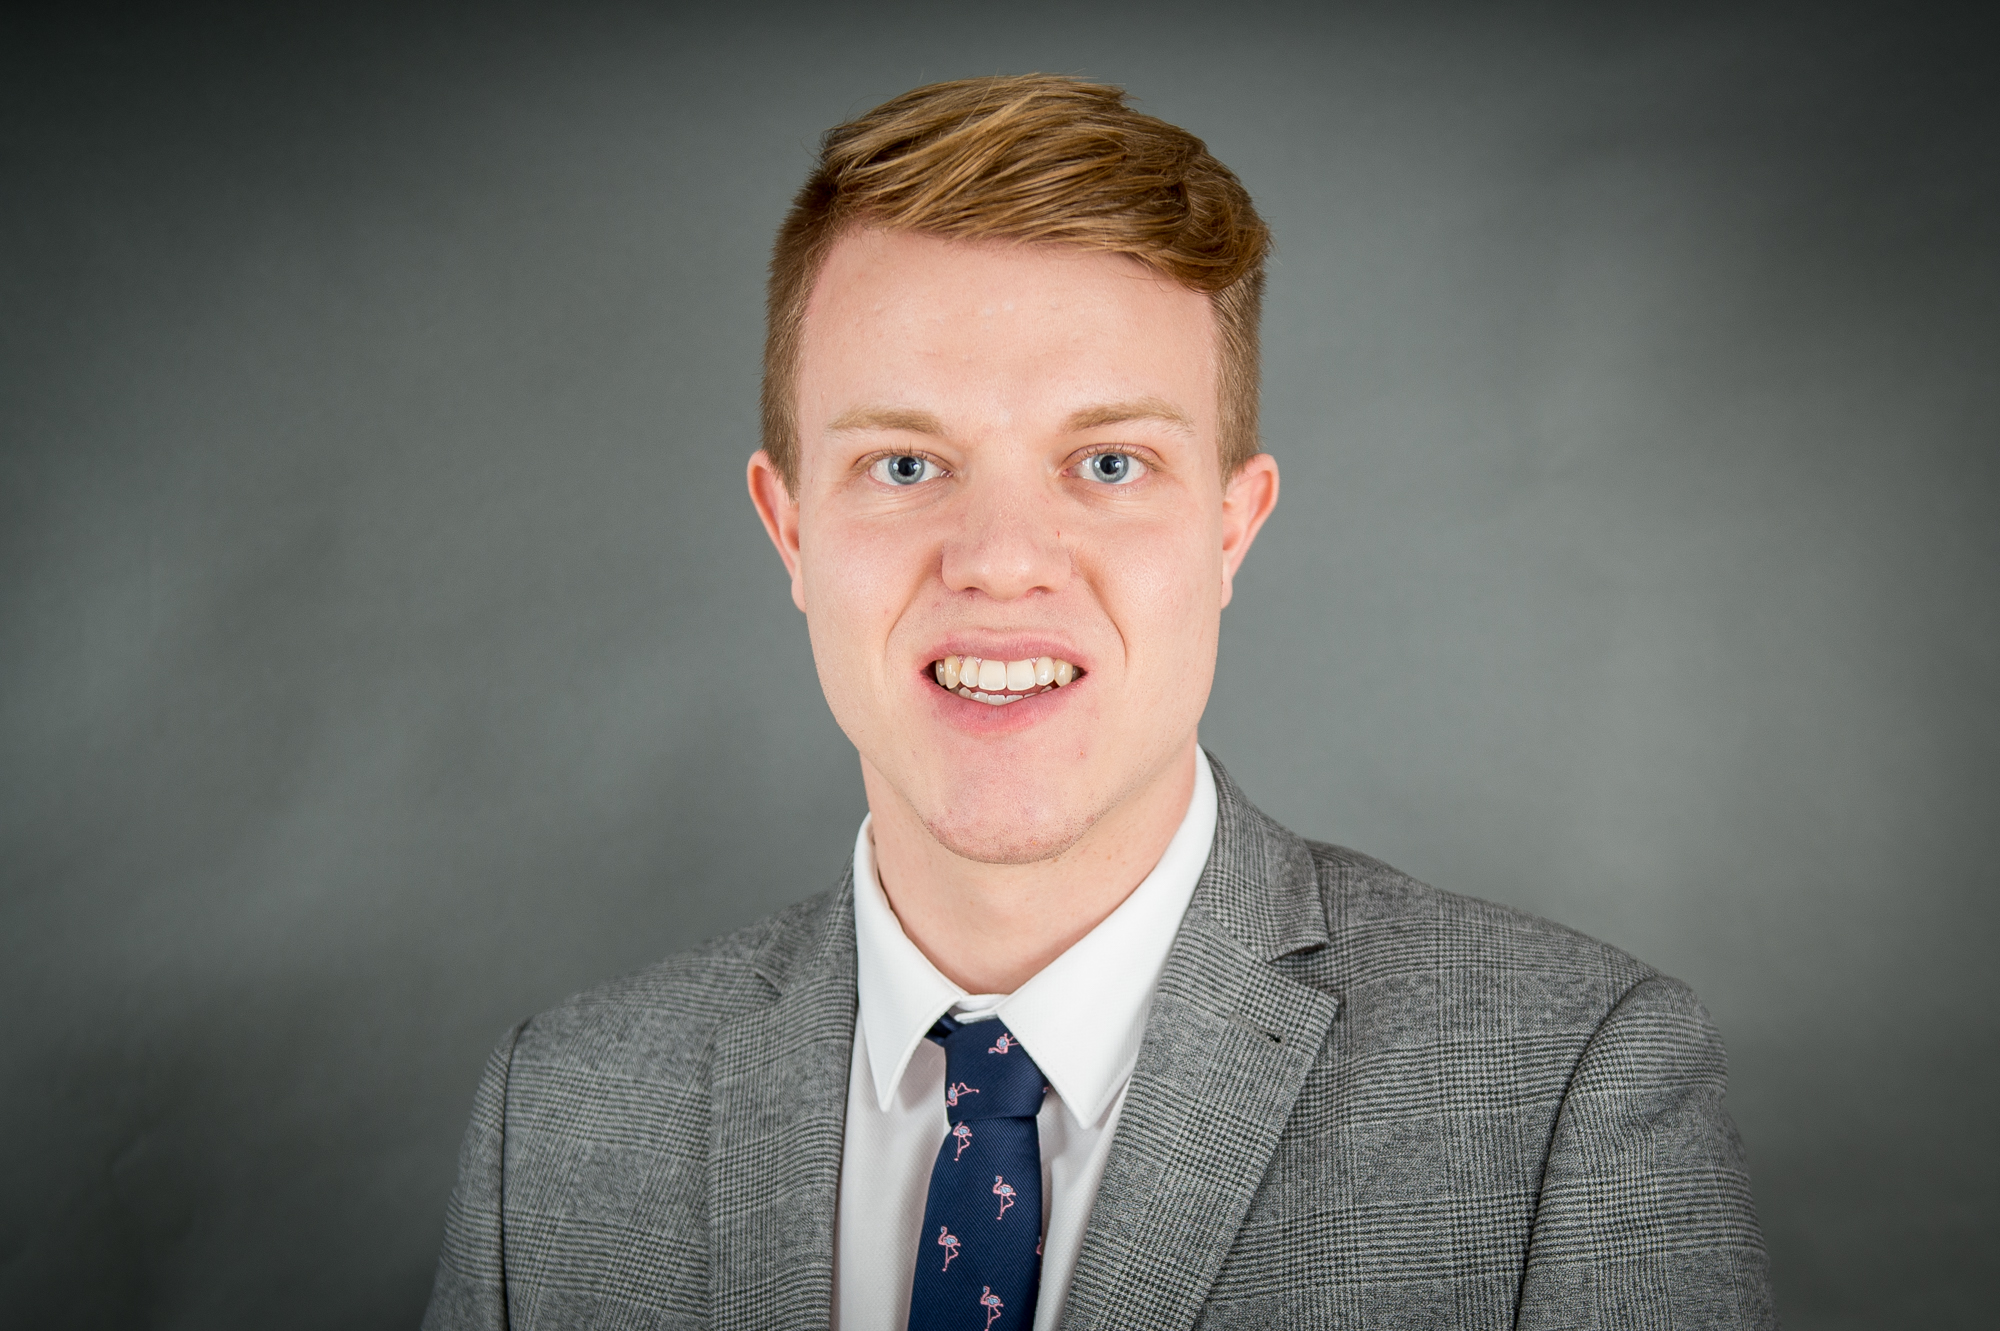 Young PR professional Fraser Clarke, who works with public relations agency, Holyrood PR in Edinburgh, Scotland